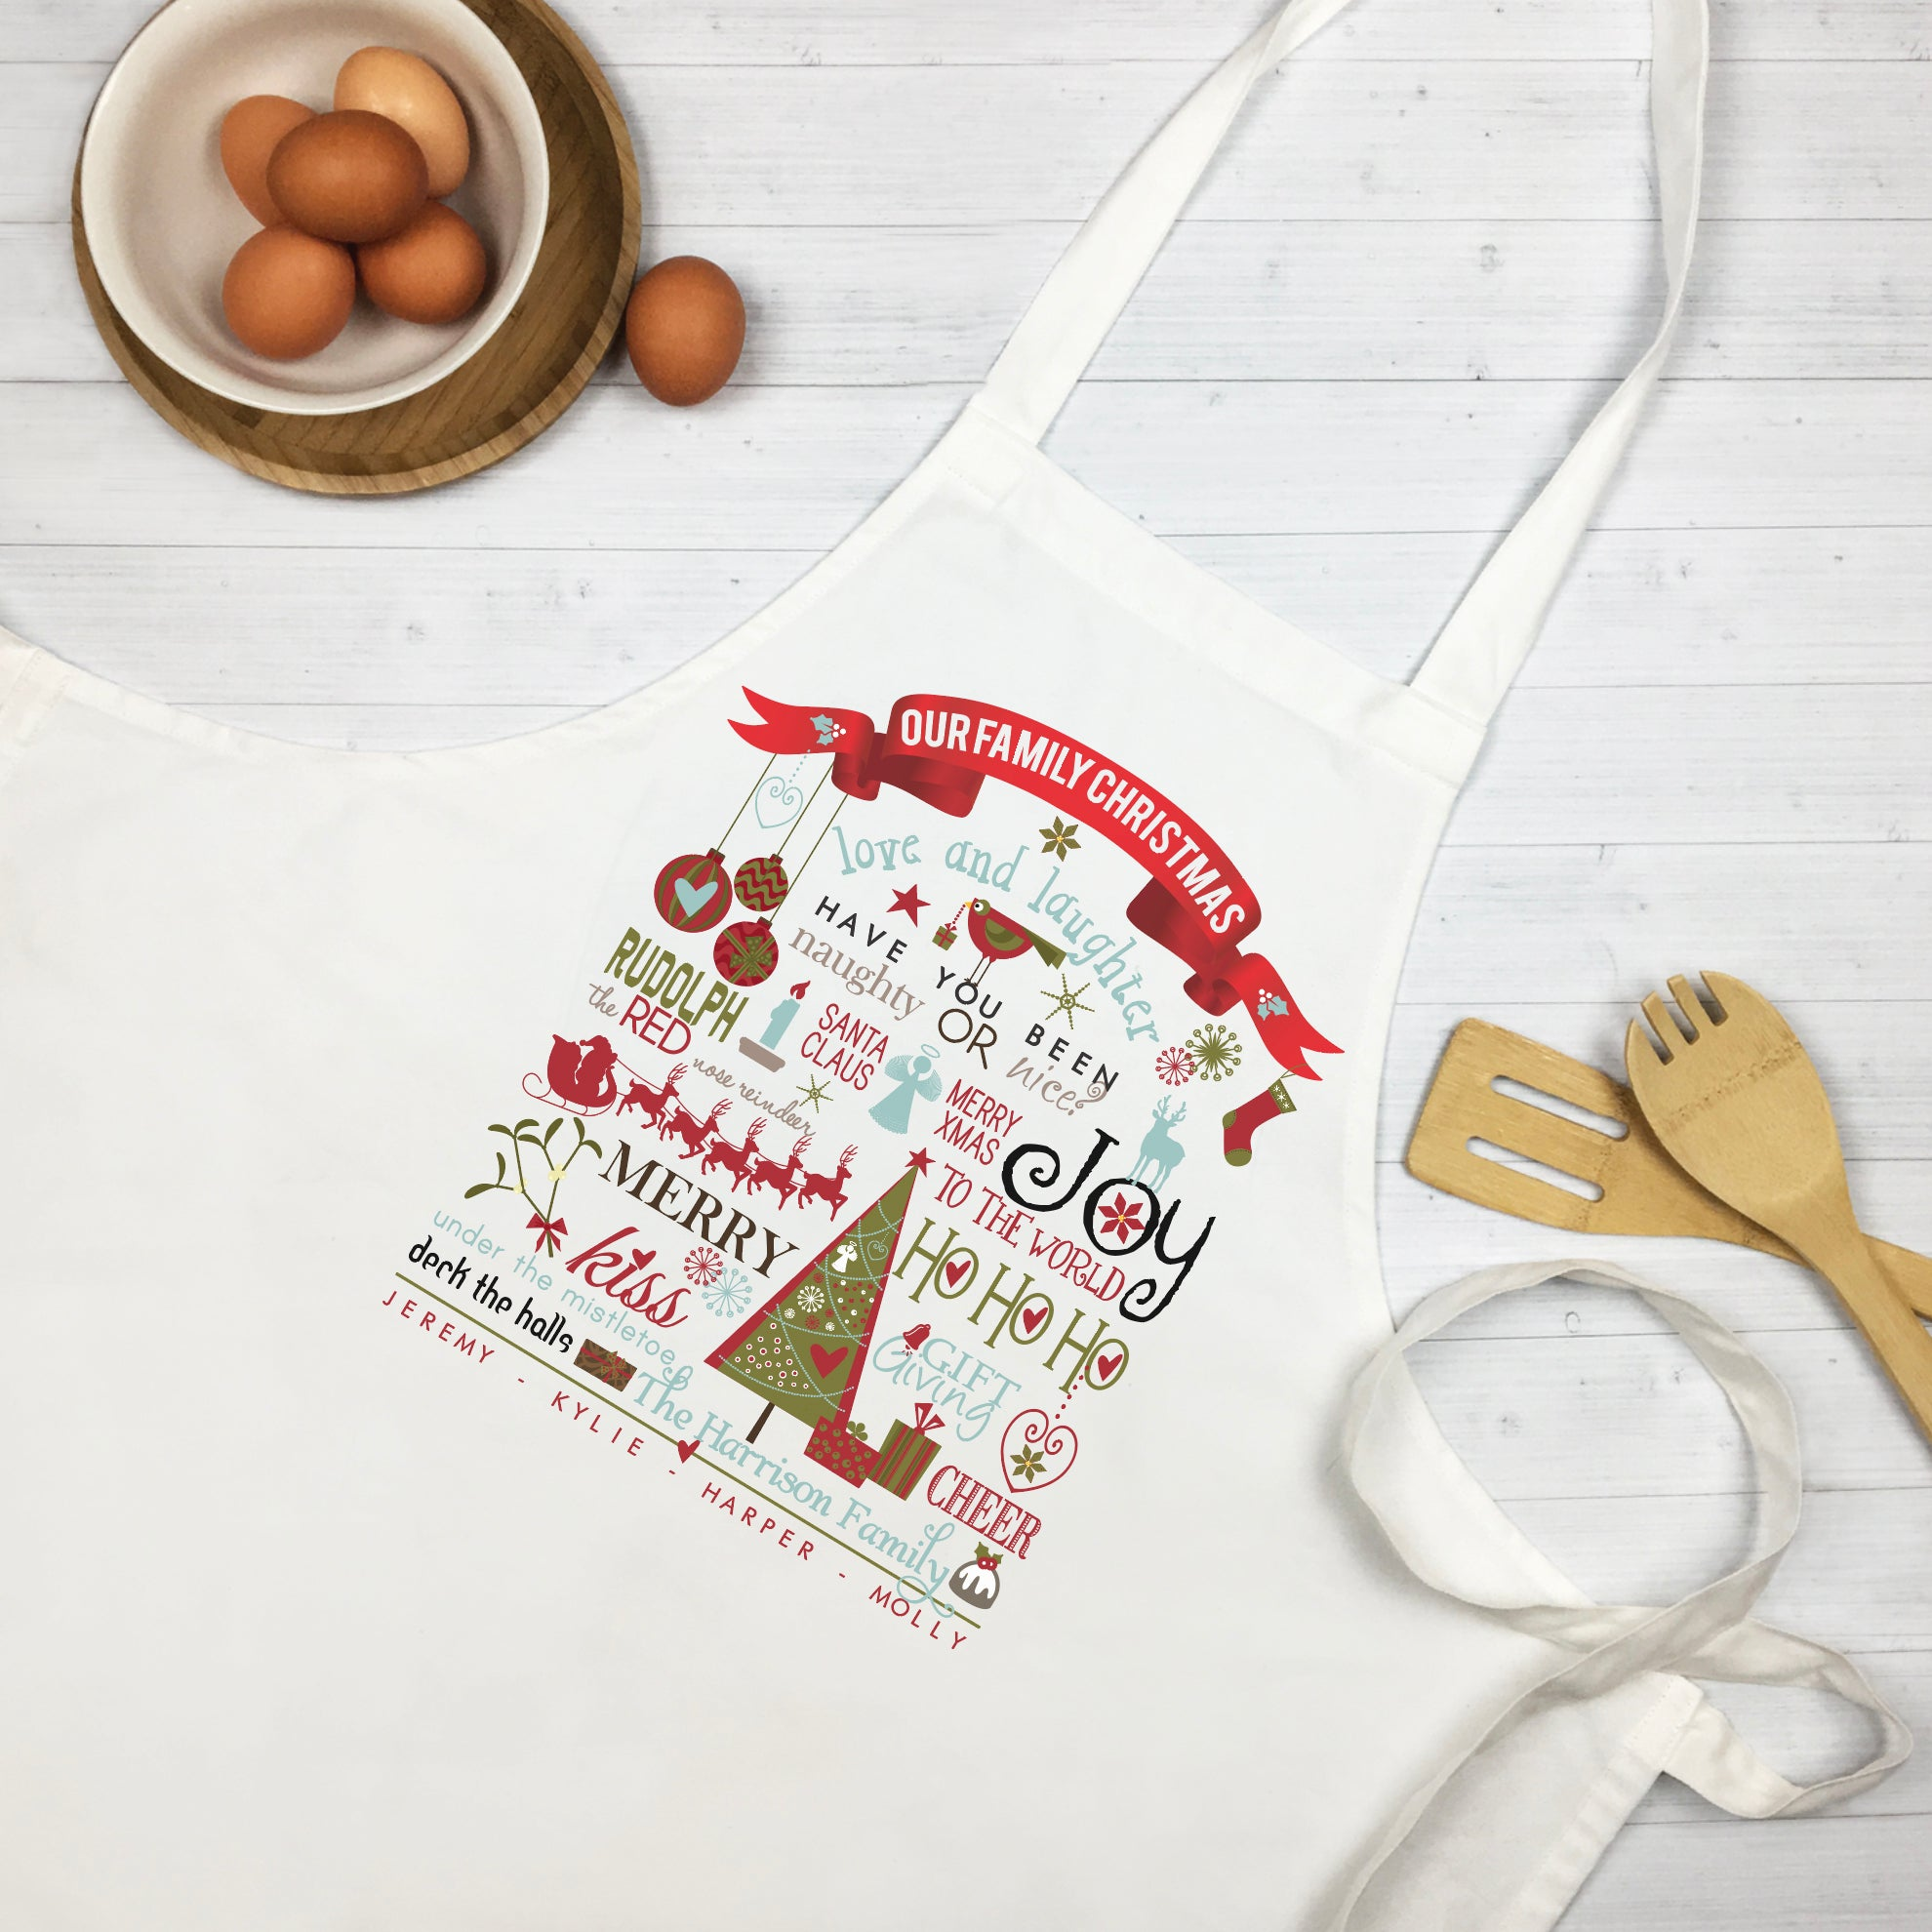 Our Family Christmas Apron